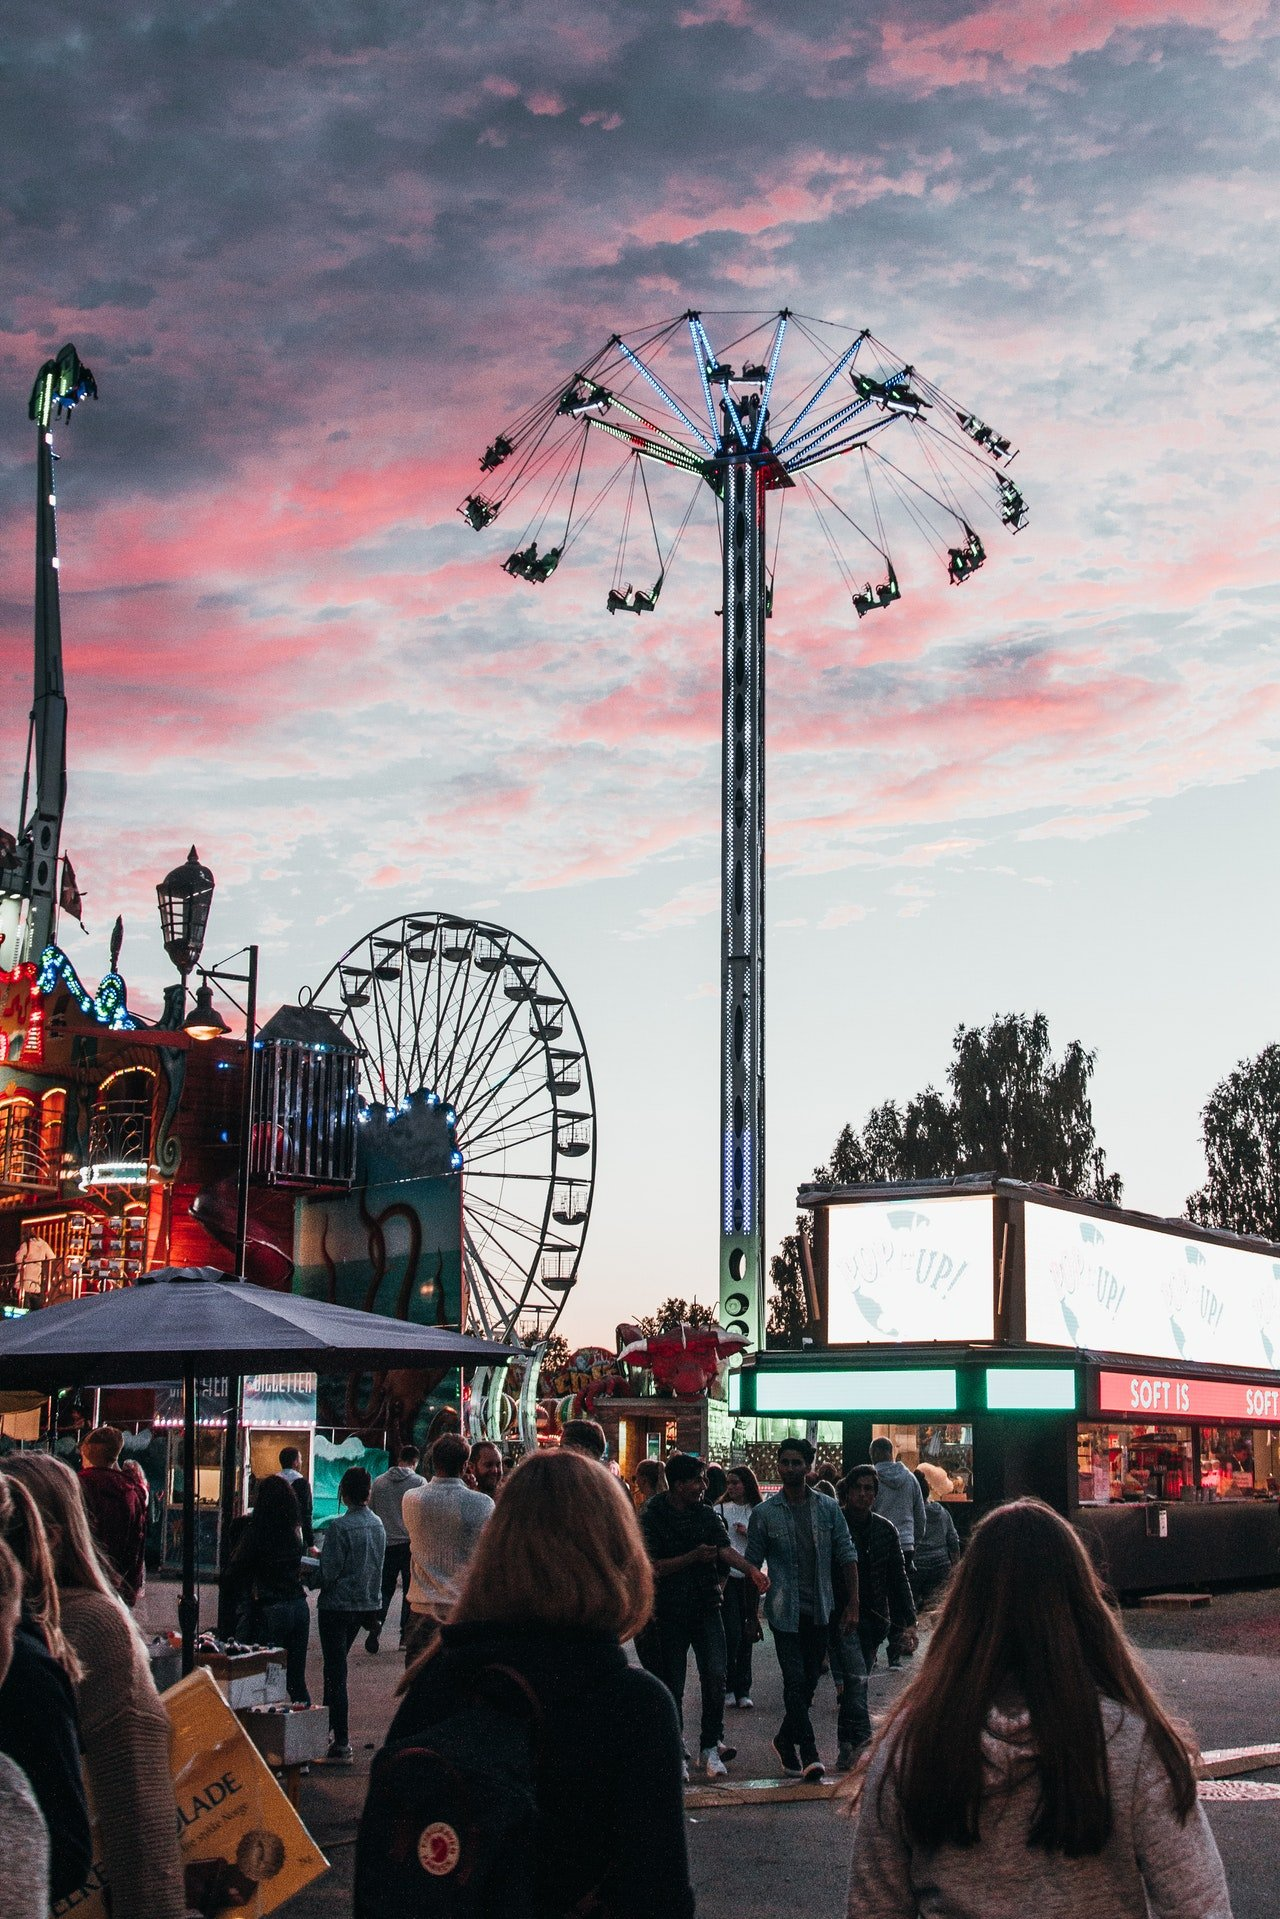 He took me to an amusement park to make up for lost time. | Source: Pexels